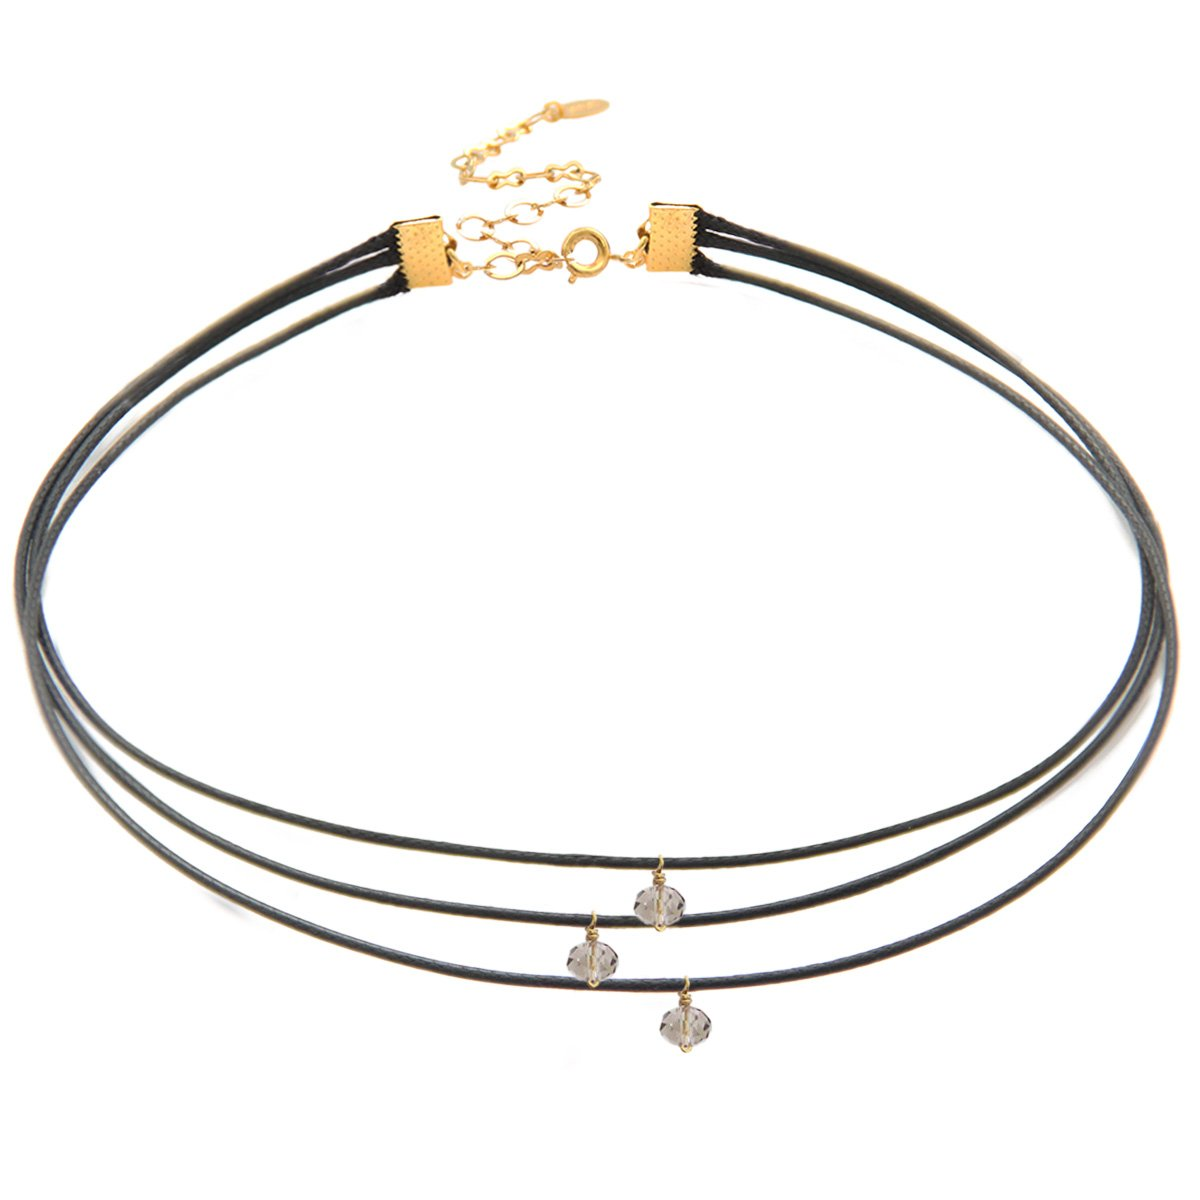 Length: 12 13 with 4 extender Stone Size: 4mm Choker Necklace Three Strand Black Waxed Cotton Cord and Smoky Crystal Choker  18K Gold Plated Closure 12.5